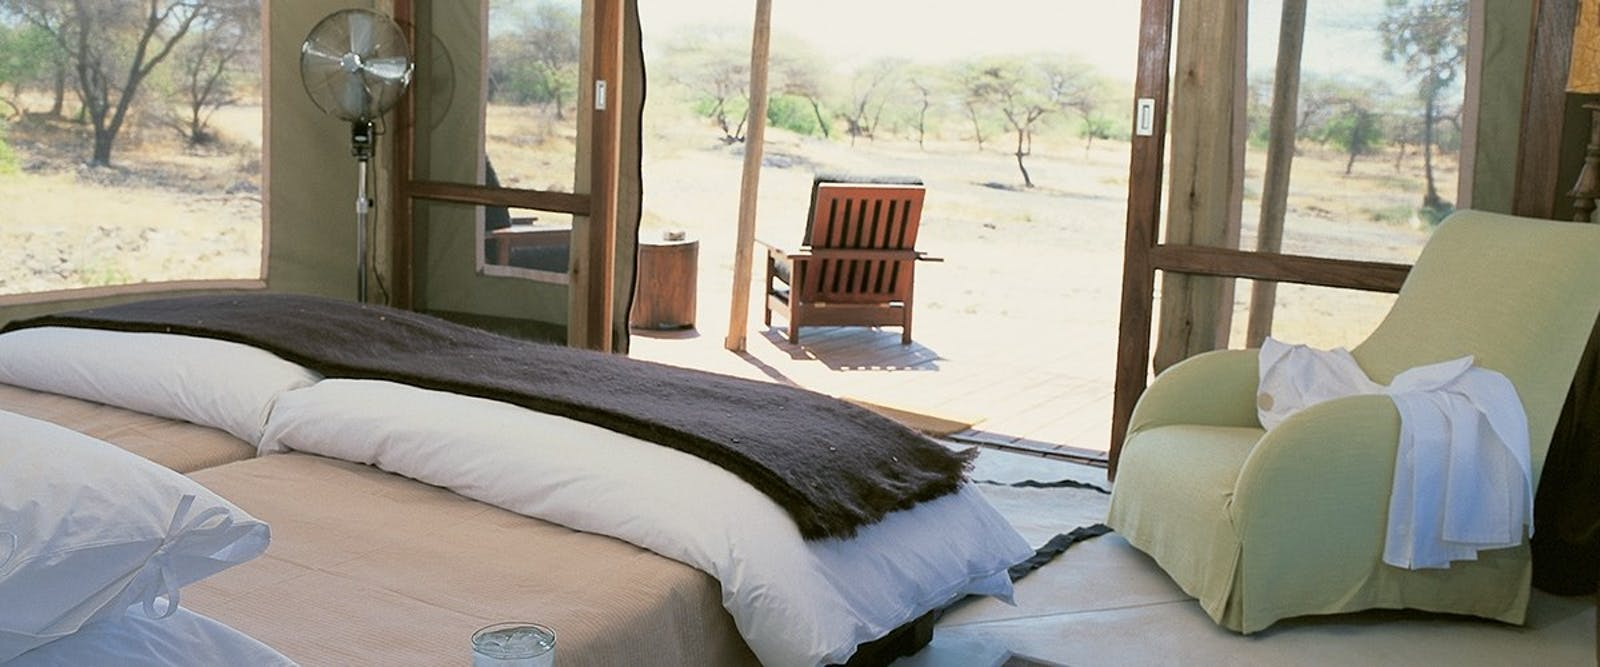 Bedroom in Tented Camp at Onguma Private Game Reserve